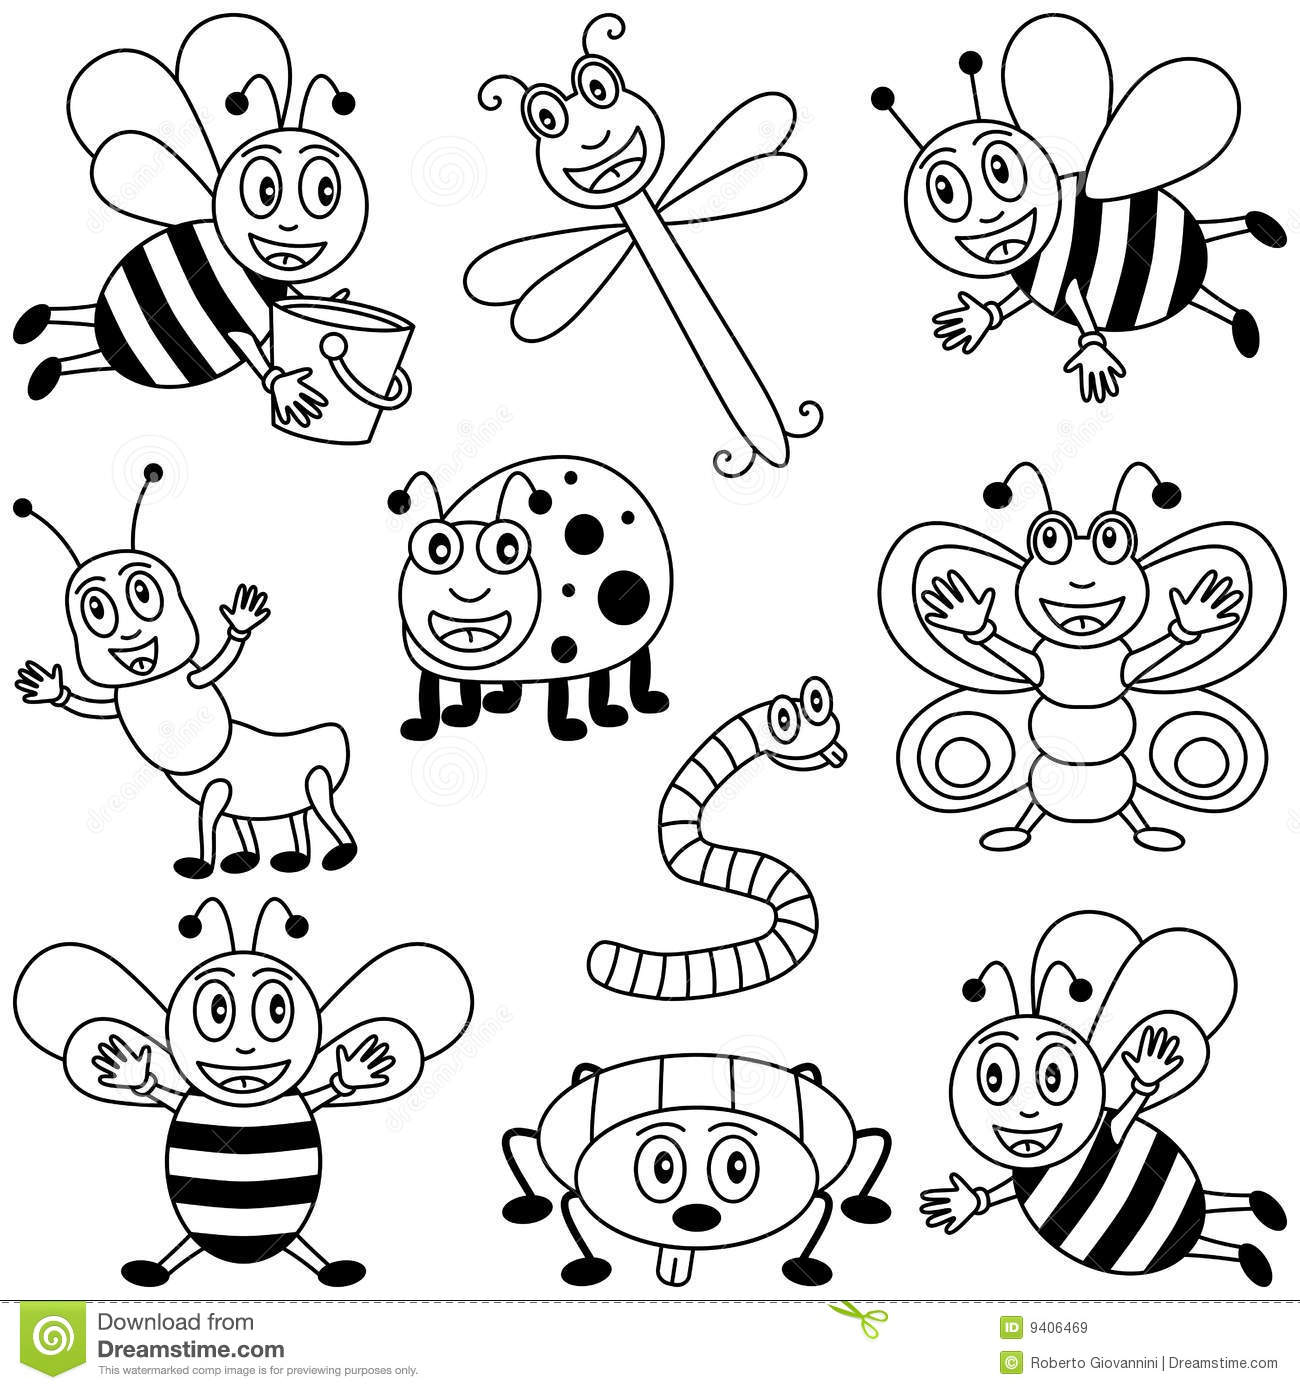 insects for coloring bugs coloring page stock illustration illustration of coloring insects for